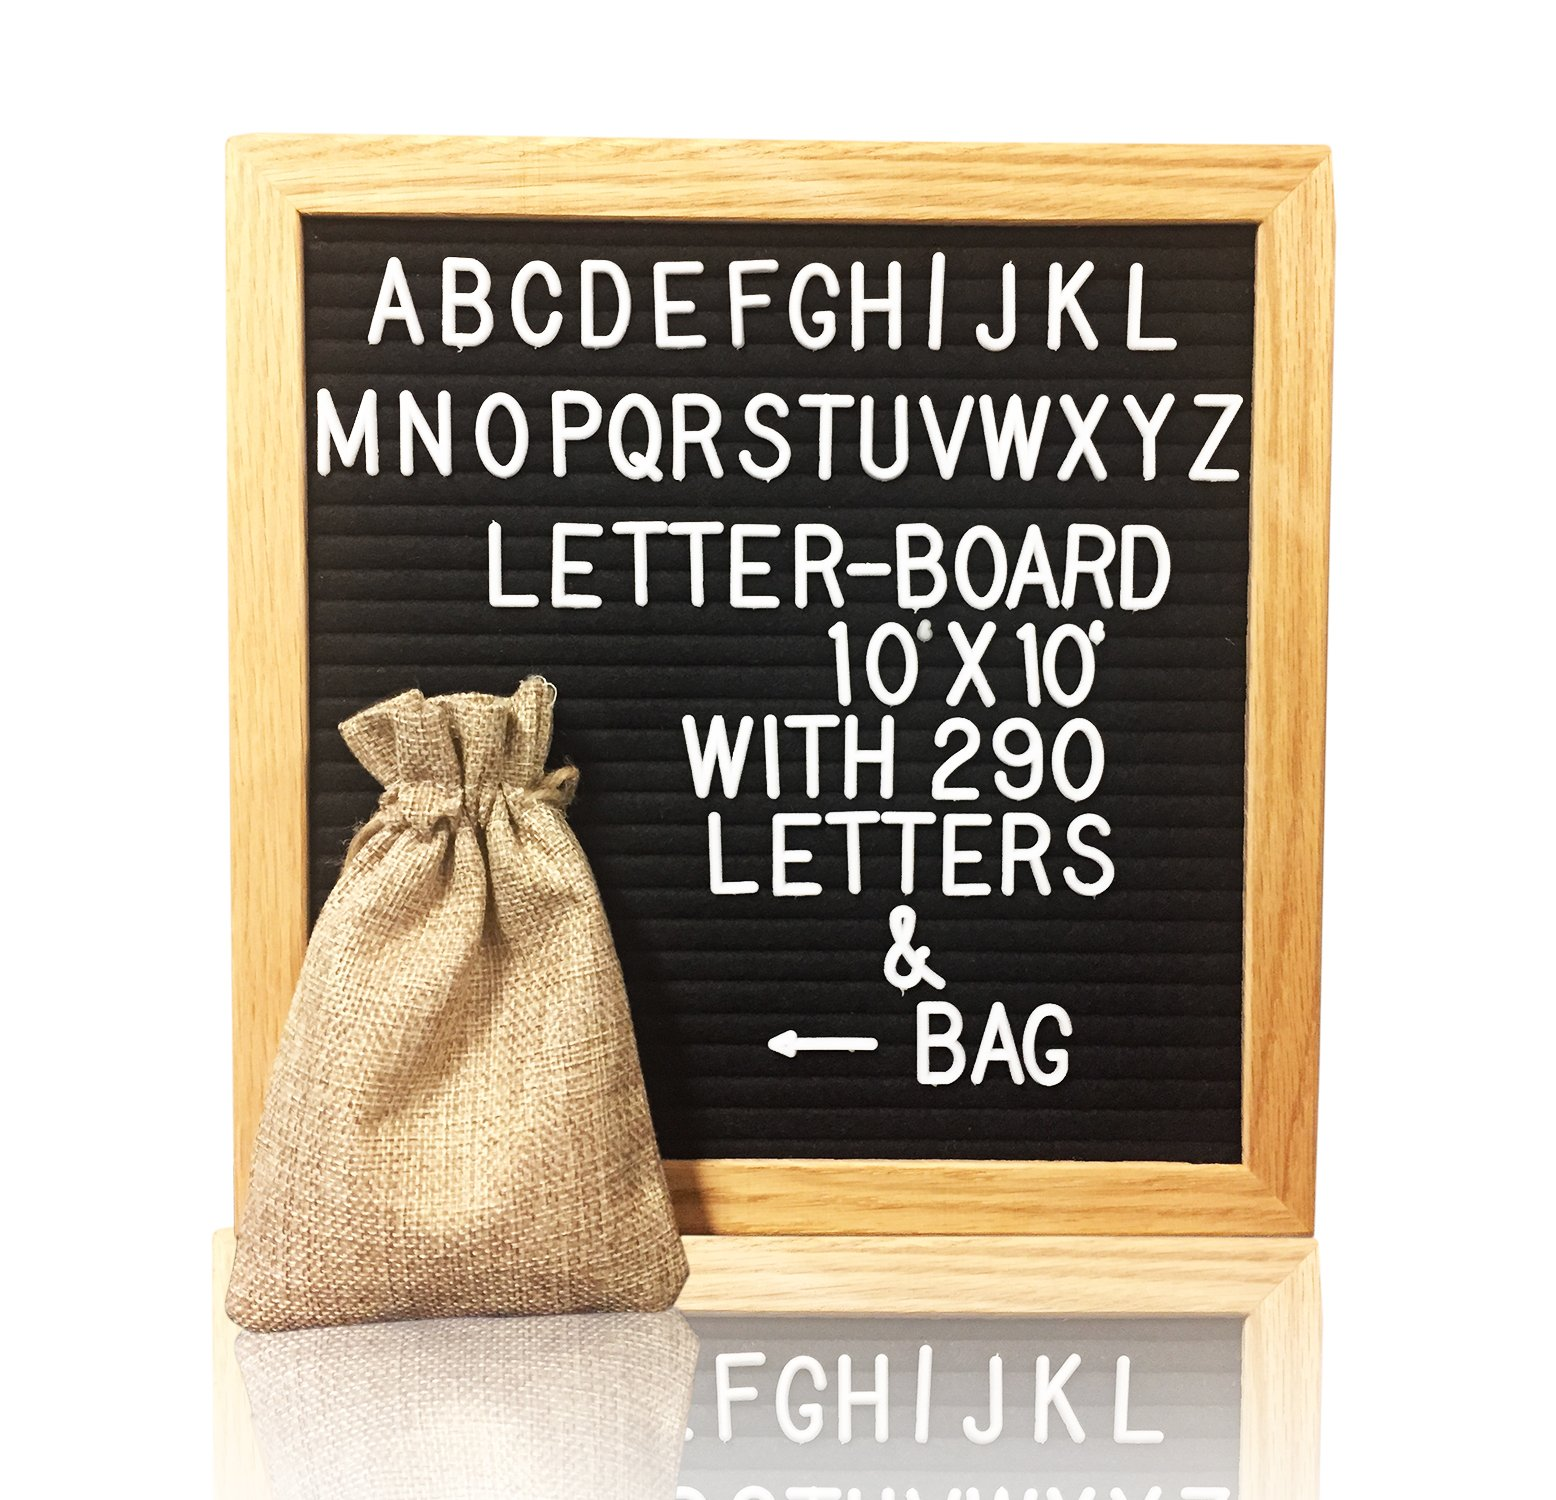 Letter Board 10''x10'' – Classic Oak Black Felt Letter Board with 290 Letters - Changeable Letter Board - Black Felt Board with White Letters & Canvas Bag 4''x6''